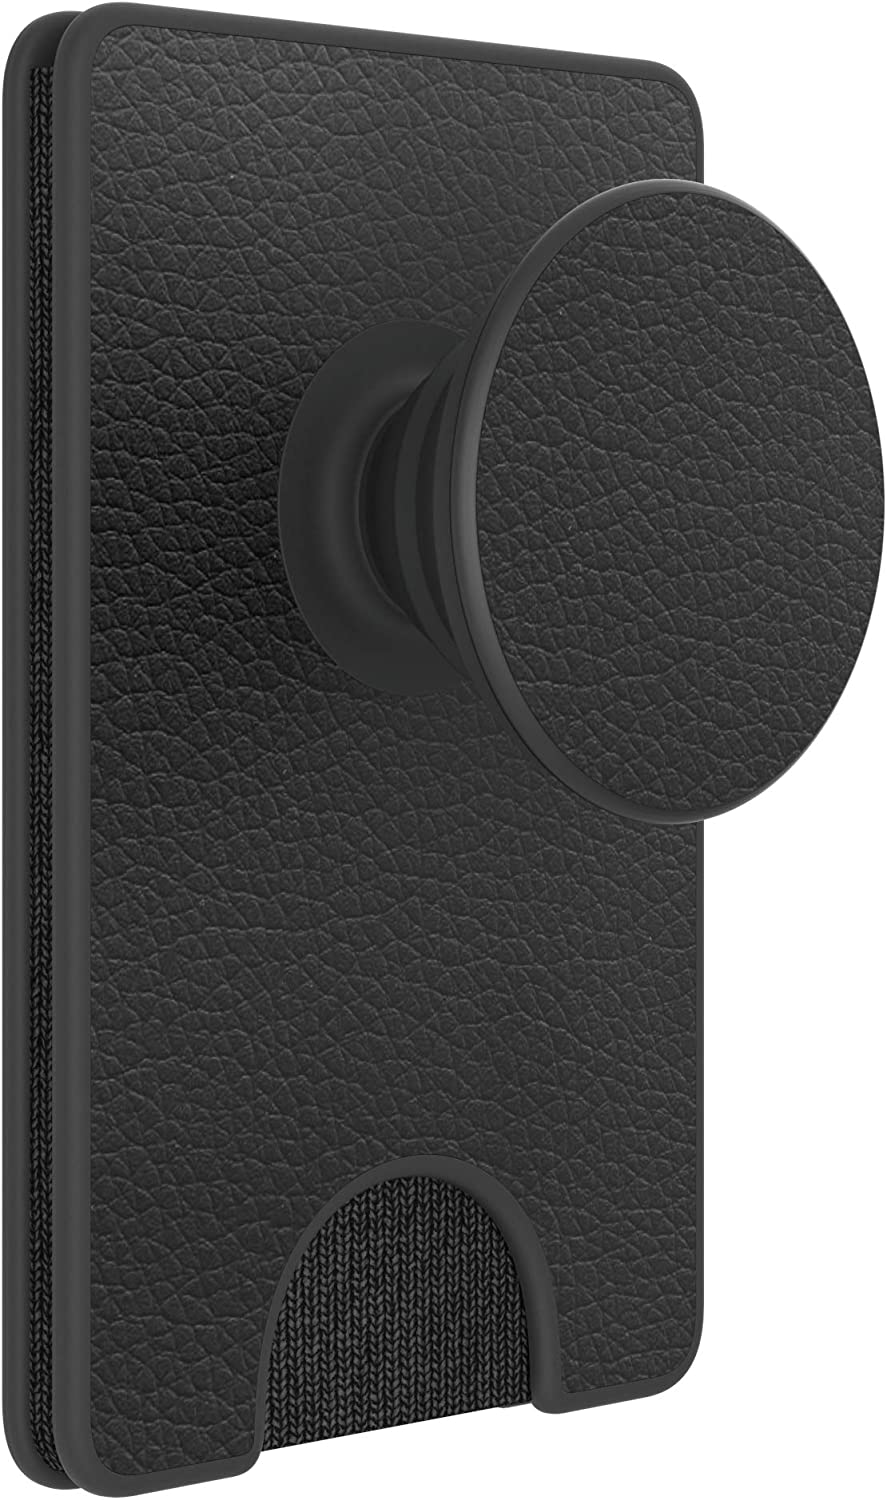 Removable /& Repositionable Wallet Youre a Gem PopSockets PopWallet+